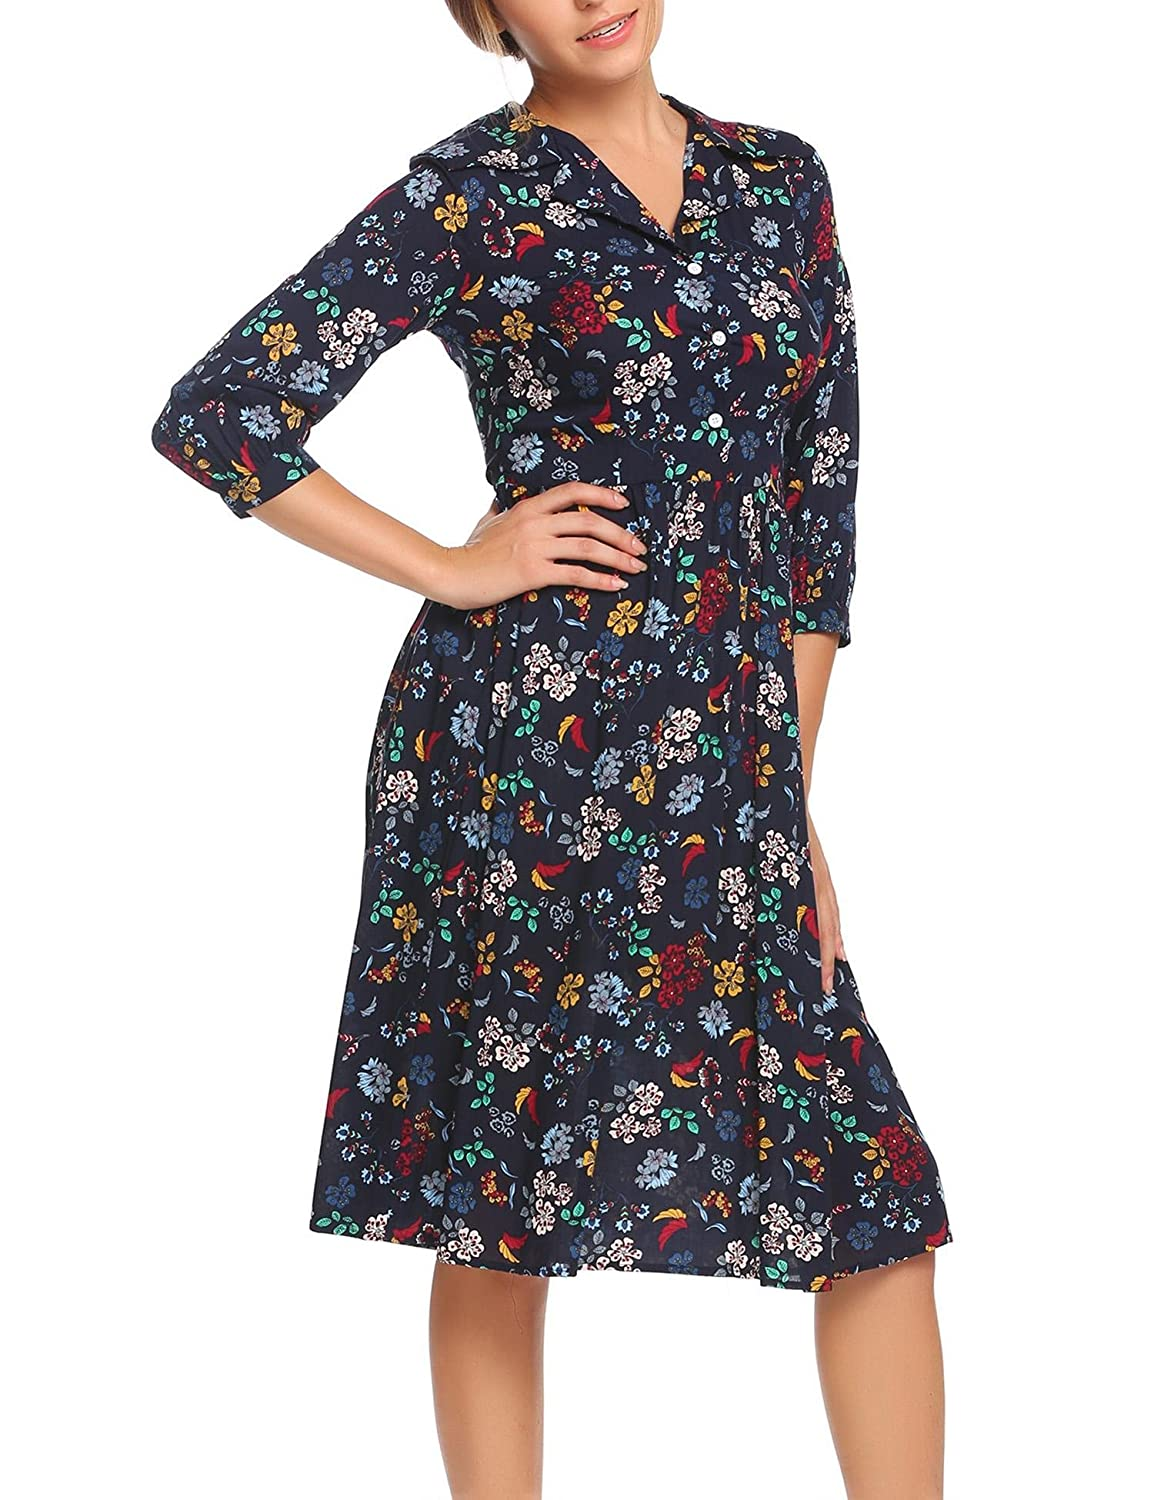 ACEVOG Women Vintage 3 4 Sleeve Button Down Floral Print Pleated Casual Dress